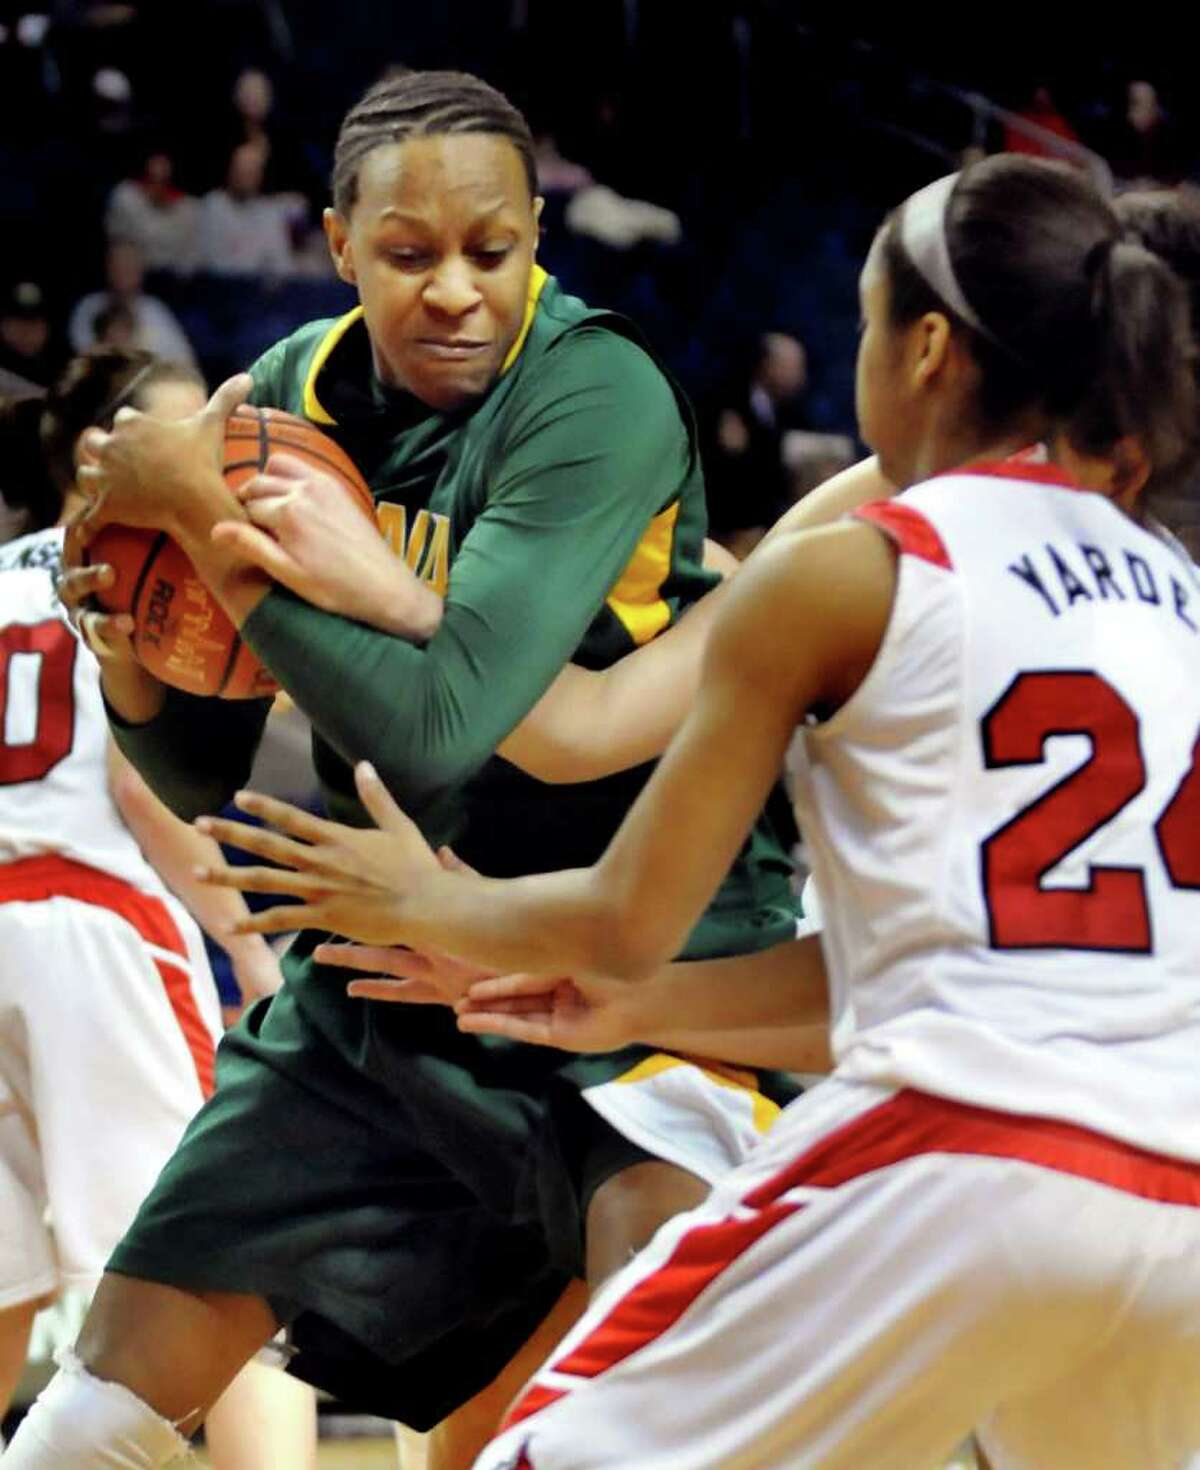 Siena's Serena Moore (32), left, secures the rebound during their basketball game against Marist at the MAAC Championships on Saturday, March 5, 2011, at Webster Band Arena at Harbor Yard in Bridgeport, Conn. (Cindy Schultz / Times Union)